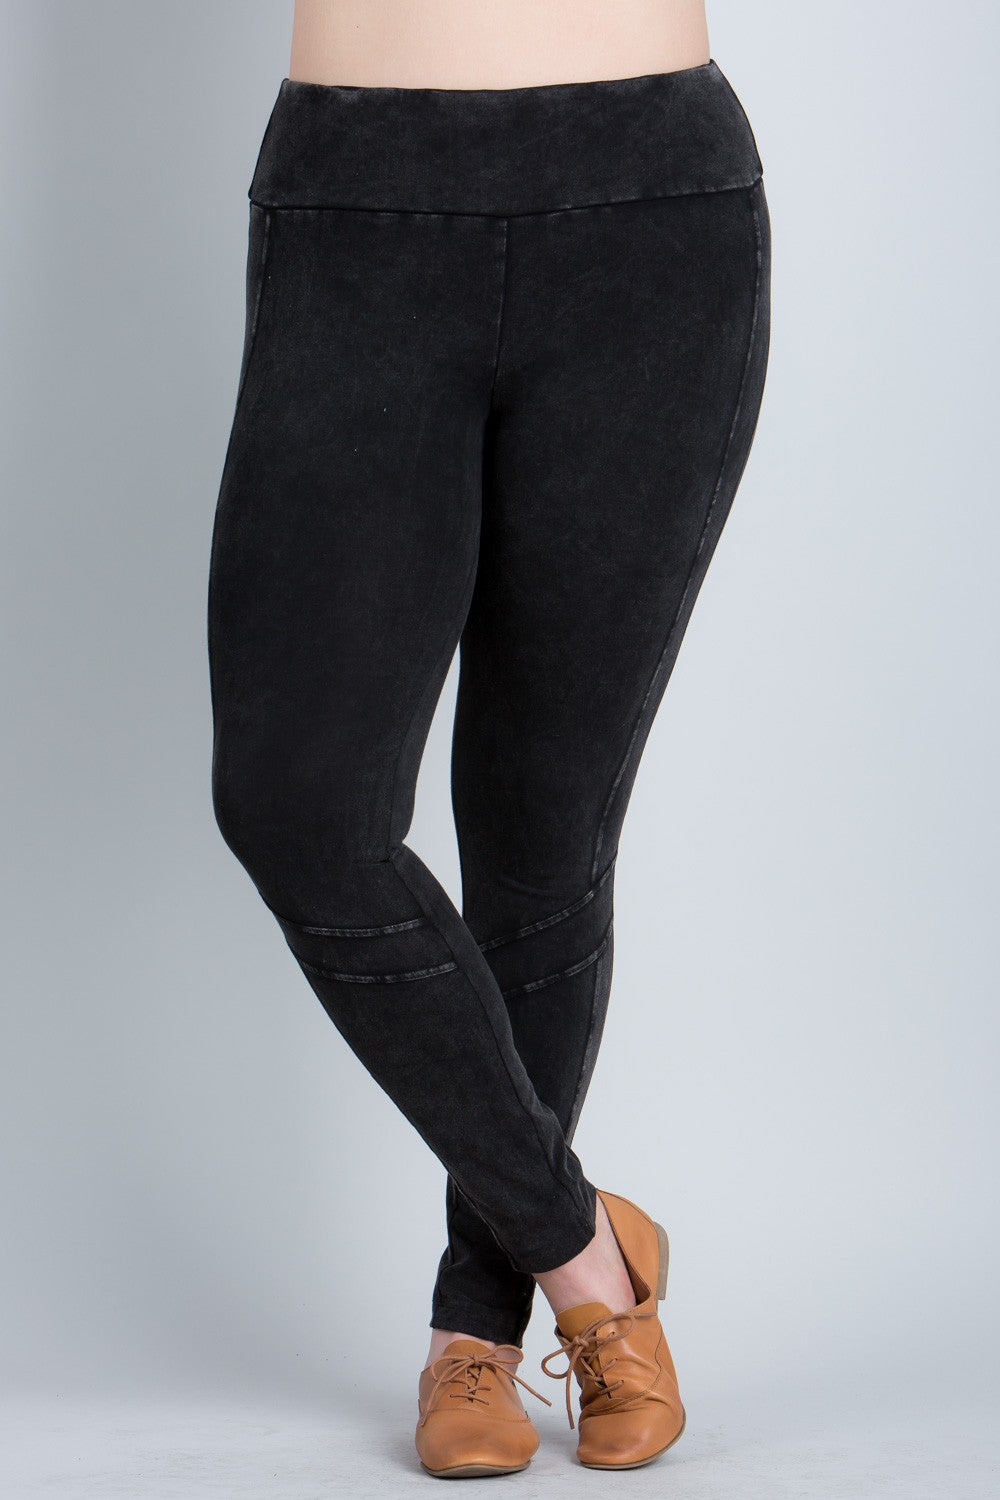 Moto Leggings in Black Mineral Wash